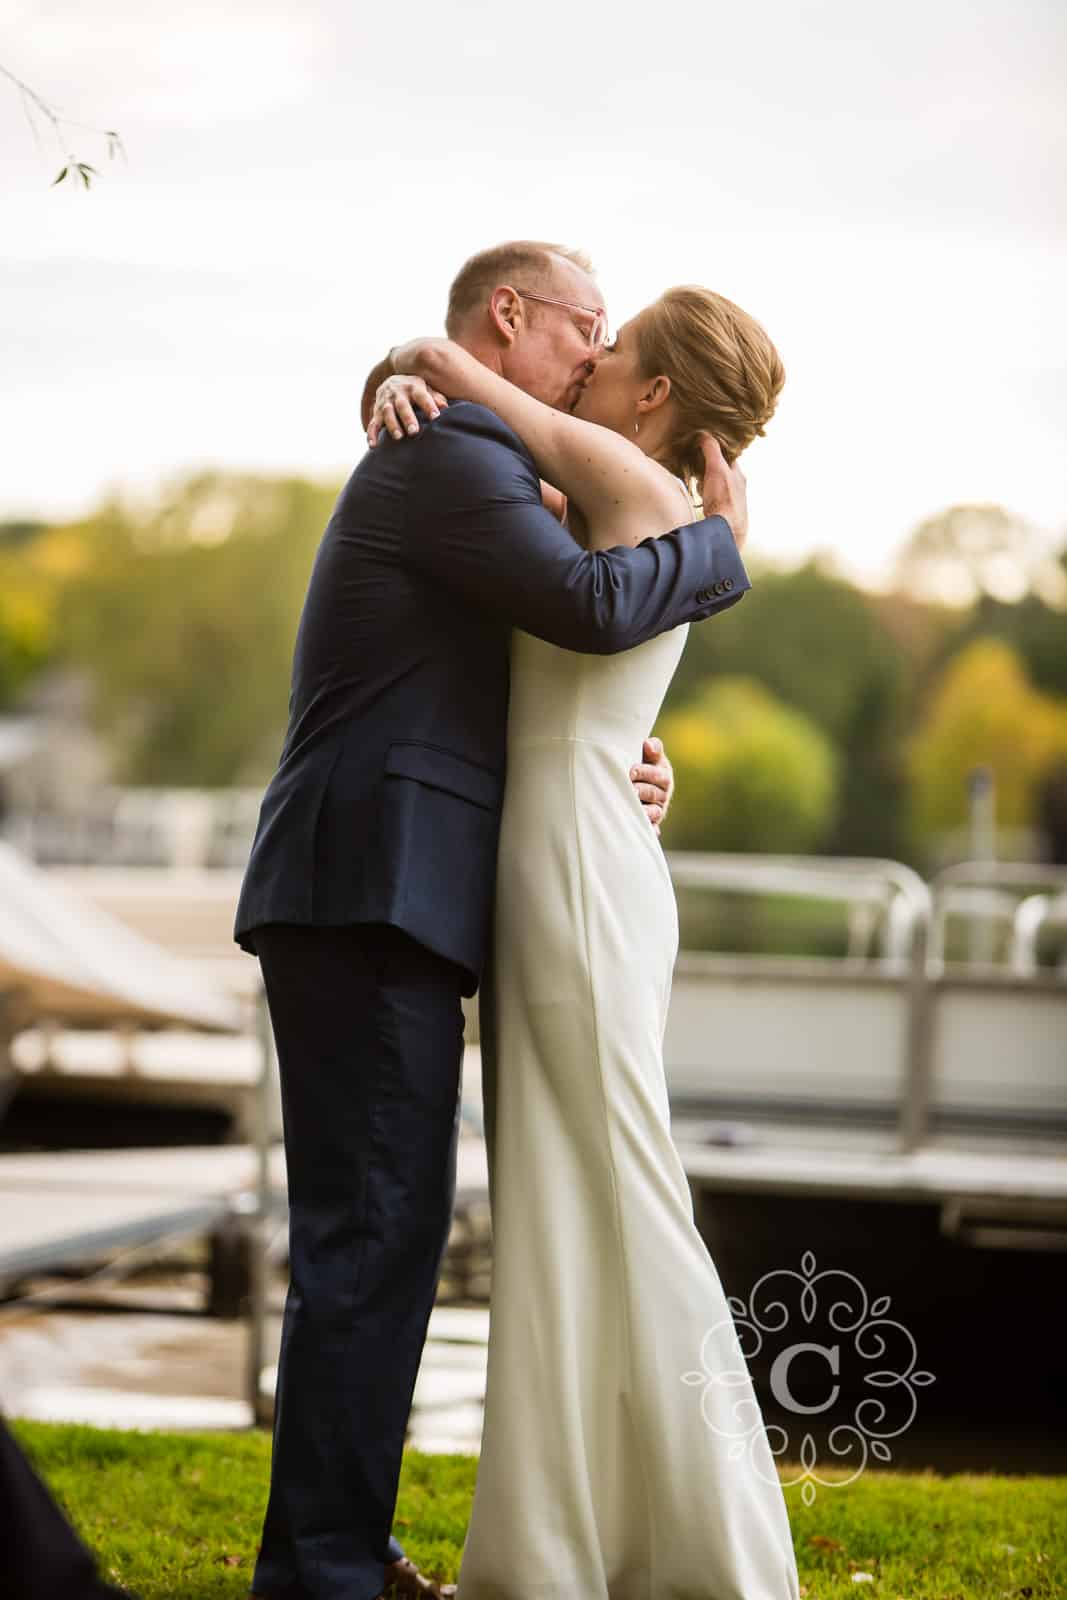 Minnesota Lakeside Back Yard Wedding Photo